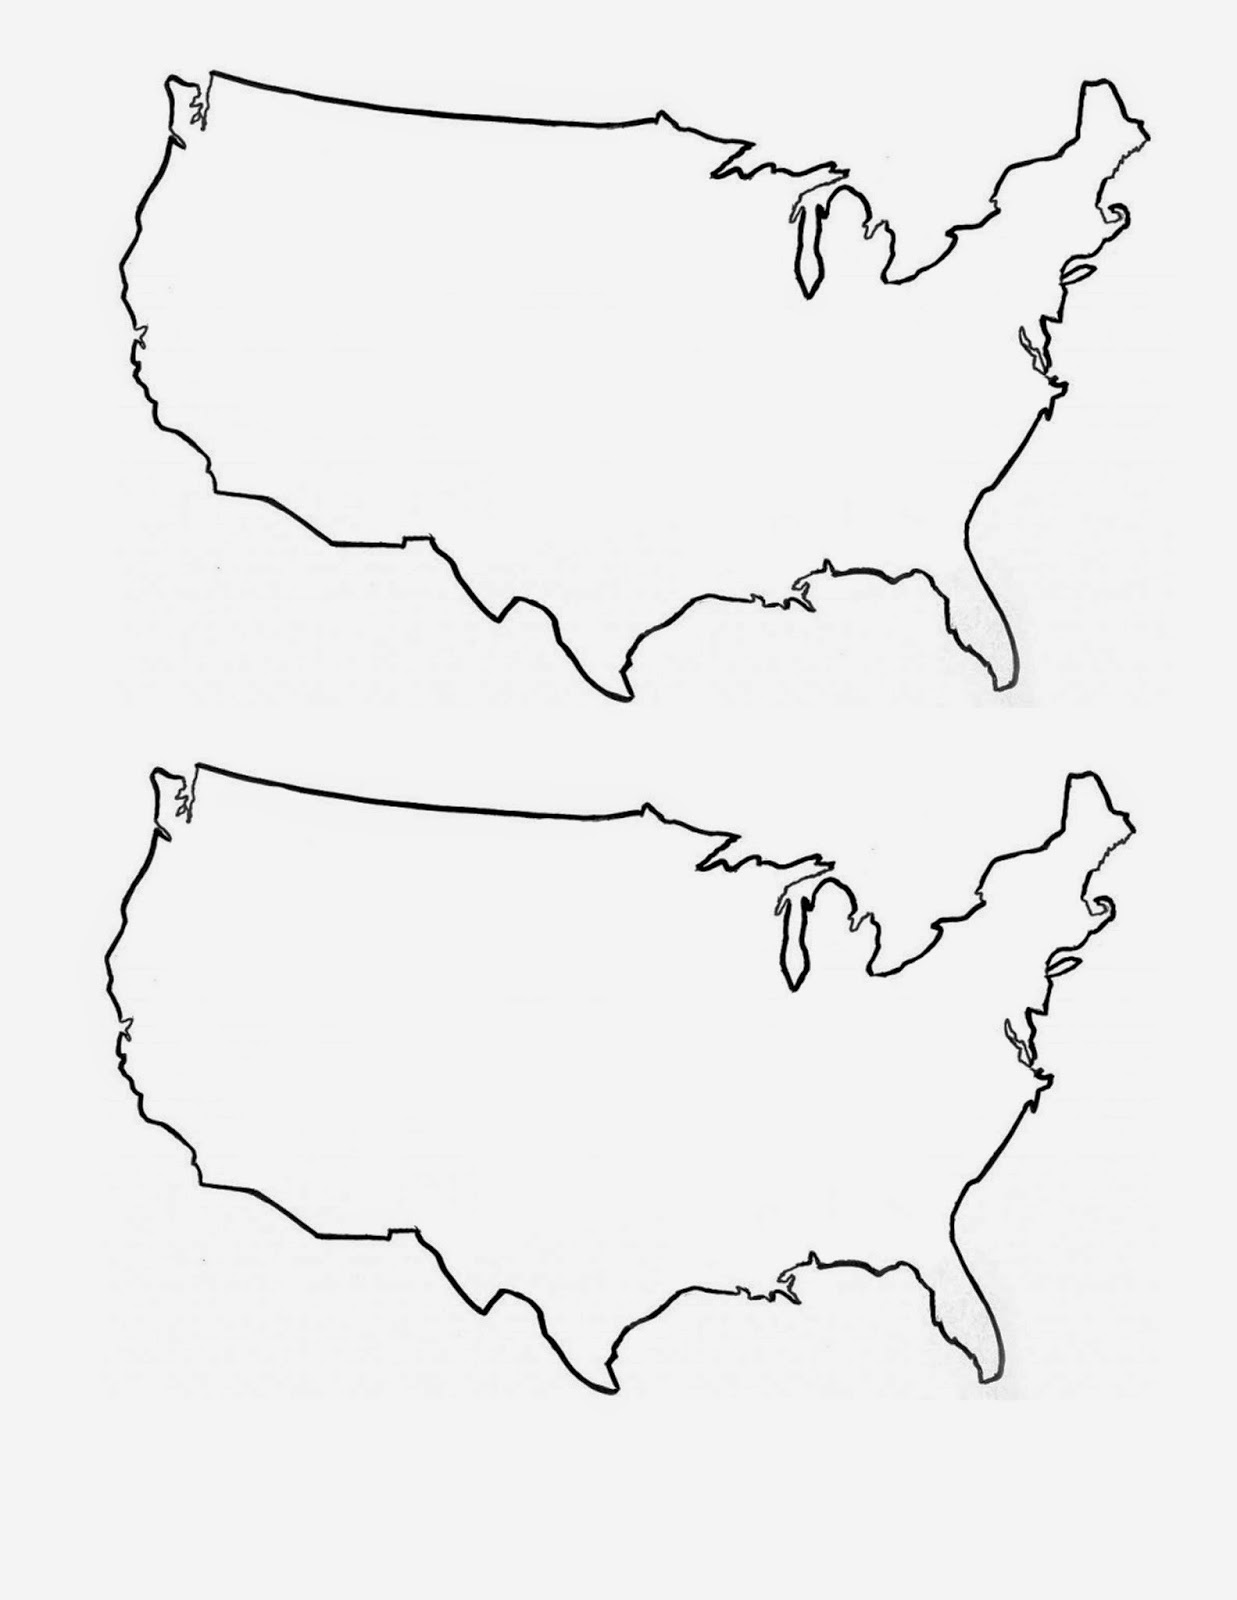 How To Draw United States Of America USA Map YouTube How To Draw - Usa map you can draw on